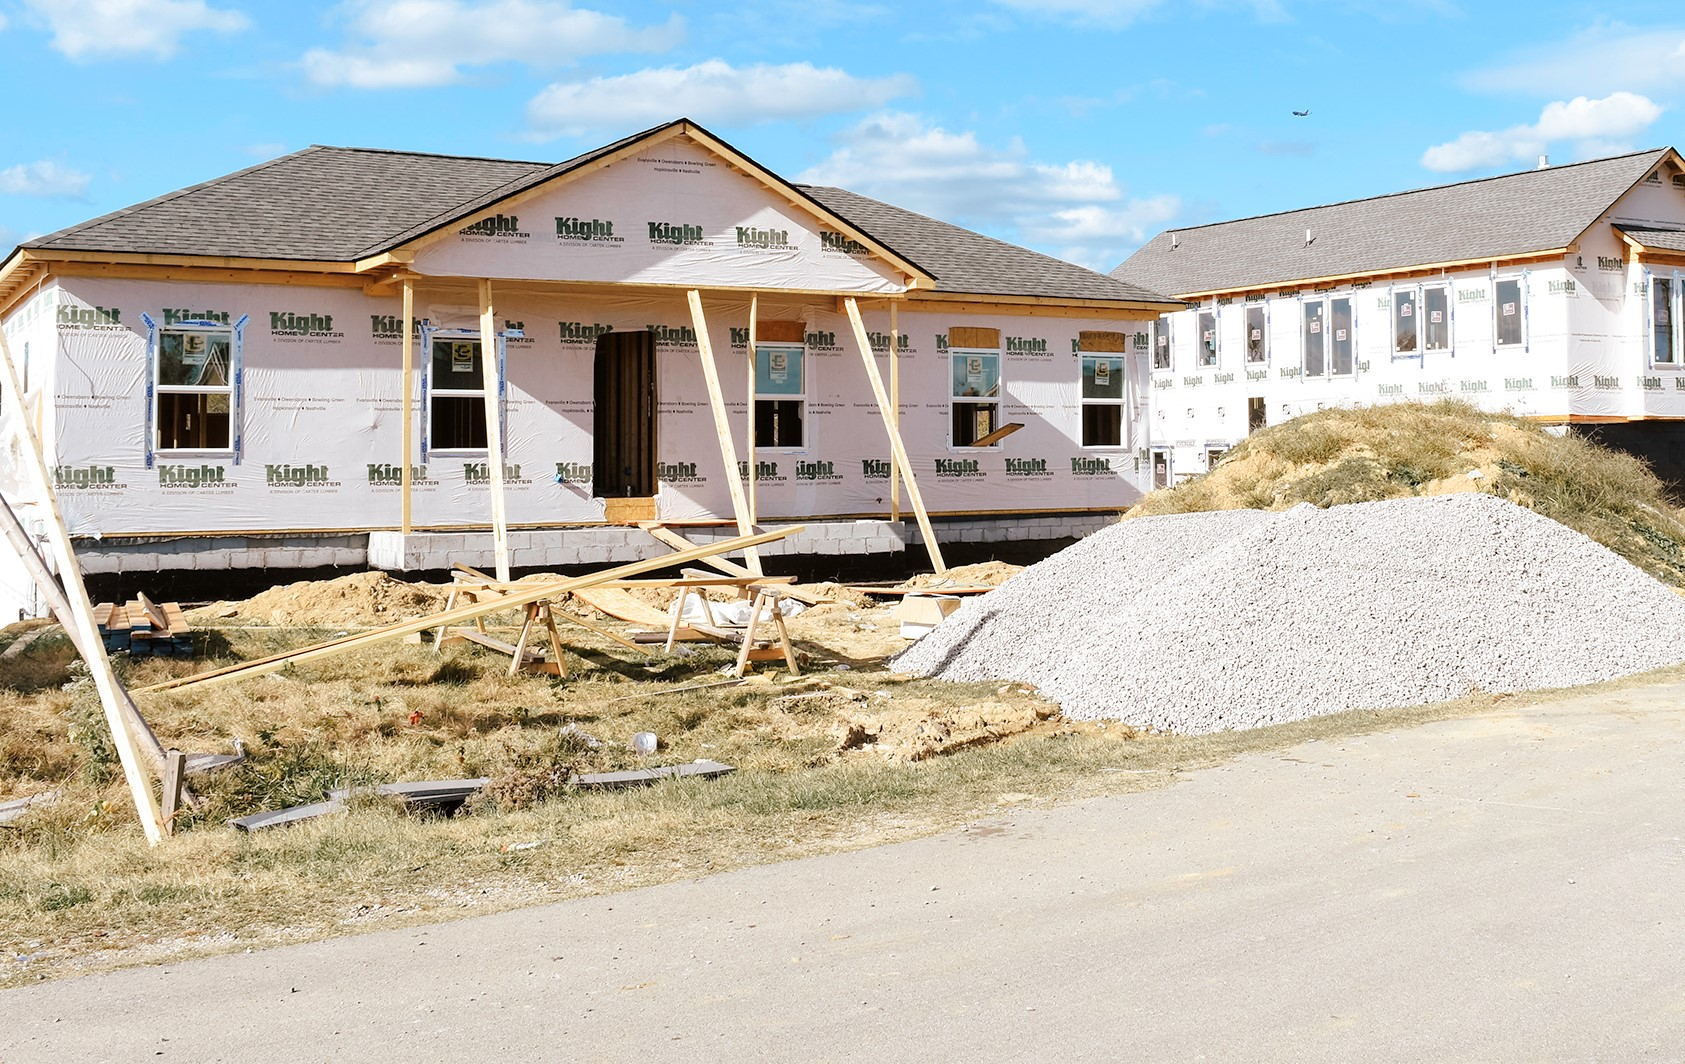 A Year After Tornadoes Strike, Much Progress, More to Do